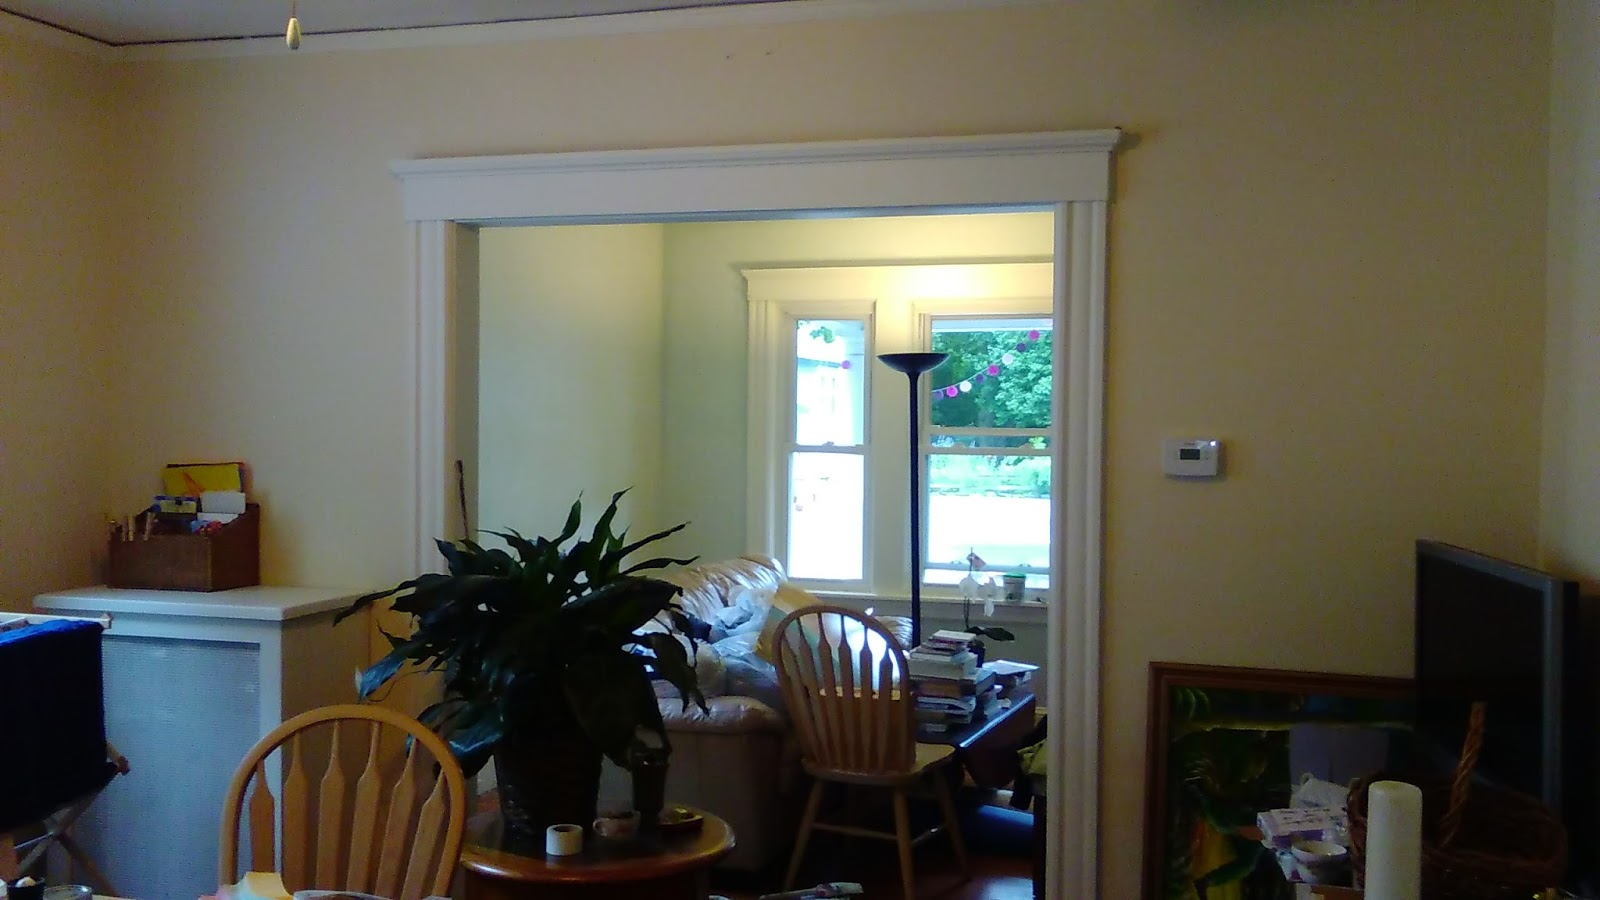 This Dining Room Is A Benjamin Moore Color Winter Wheat With Greek Villa Trim